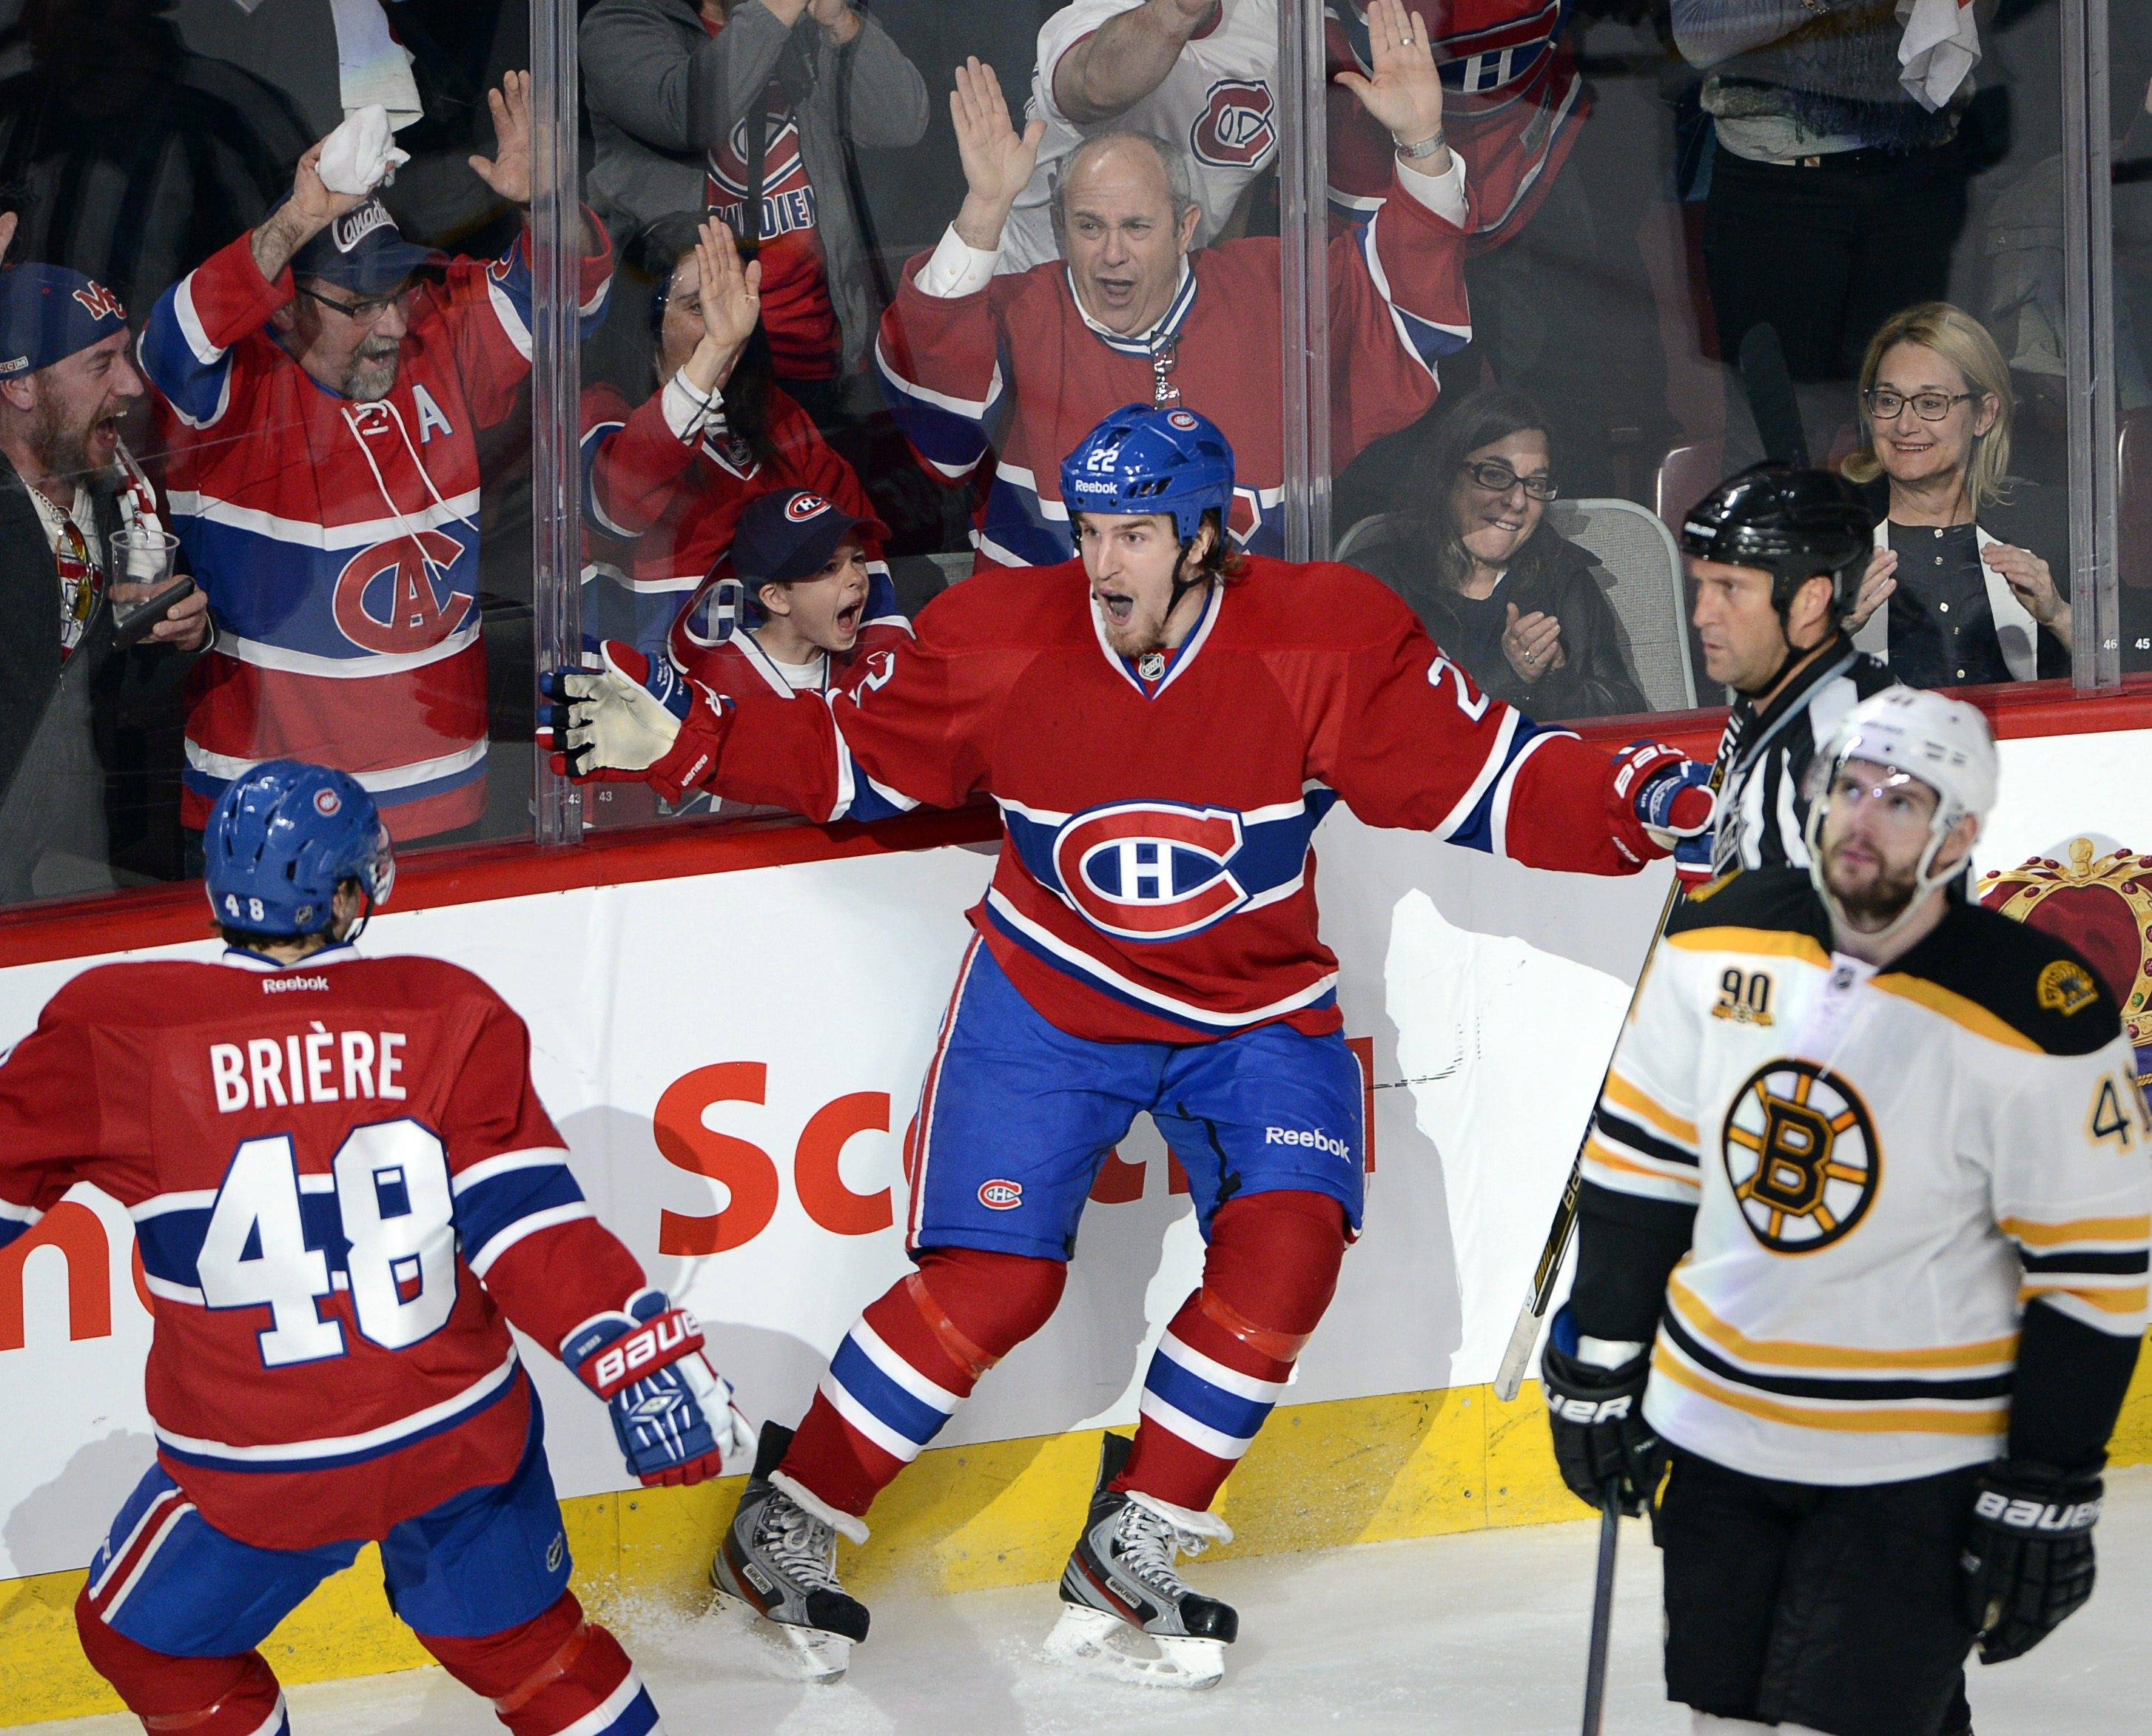 Montreal Canadiens right wing Dale Weise (22) celebrates his goal with teammate center Daniel Briere (48) as Boston Bruins defenseman Andrej Meszaros (41) looks on during the second period of Game 3 of an NHL hockey Stanley Cup playoff series, Tuesday, May 6, 2014, in Montreal. (AP Photo/The Canadian Press, Ryan Remiorz)